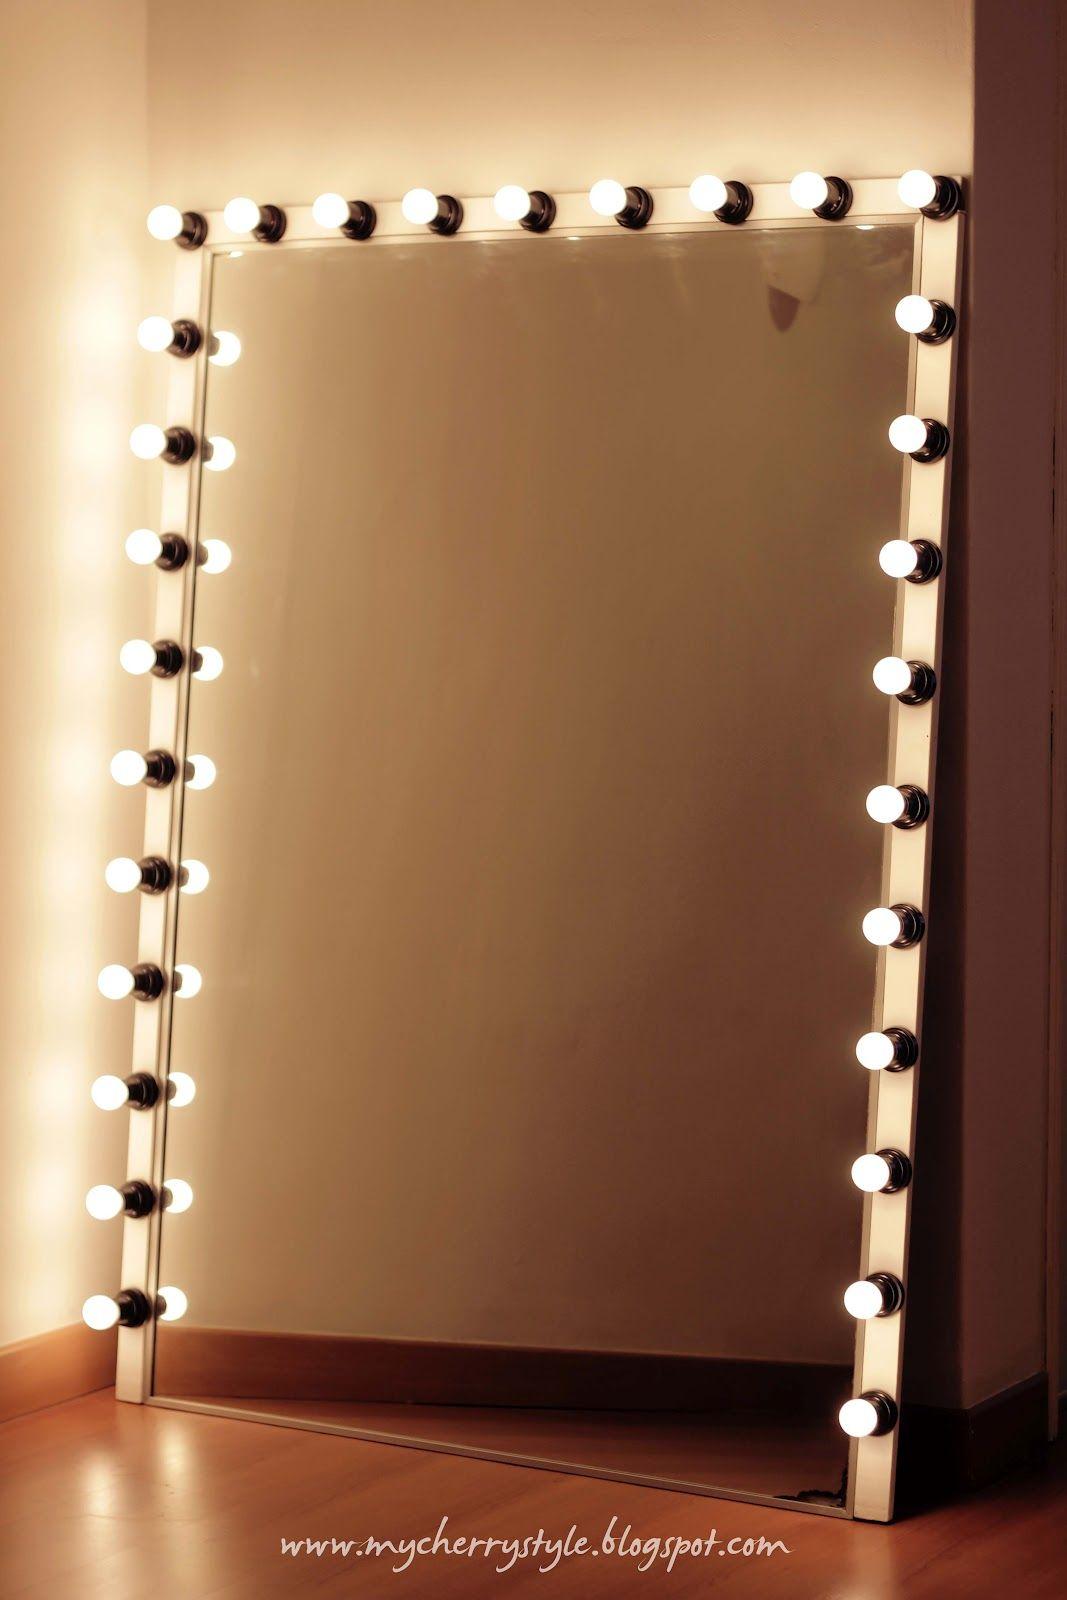 Diy hollywood style mirror with lights tutorial from scratch for diy hollywood style mirror with lights tutorial from scratch perfect to sit vanity table in front of tons of ideas i could use this for aloadofball Images